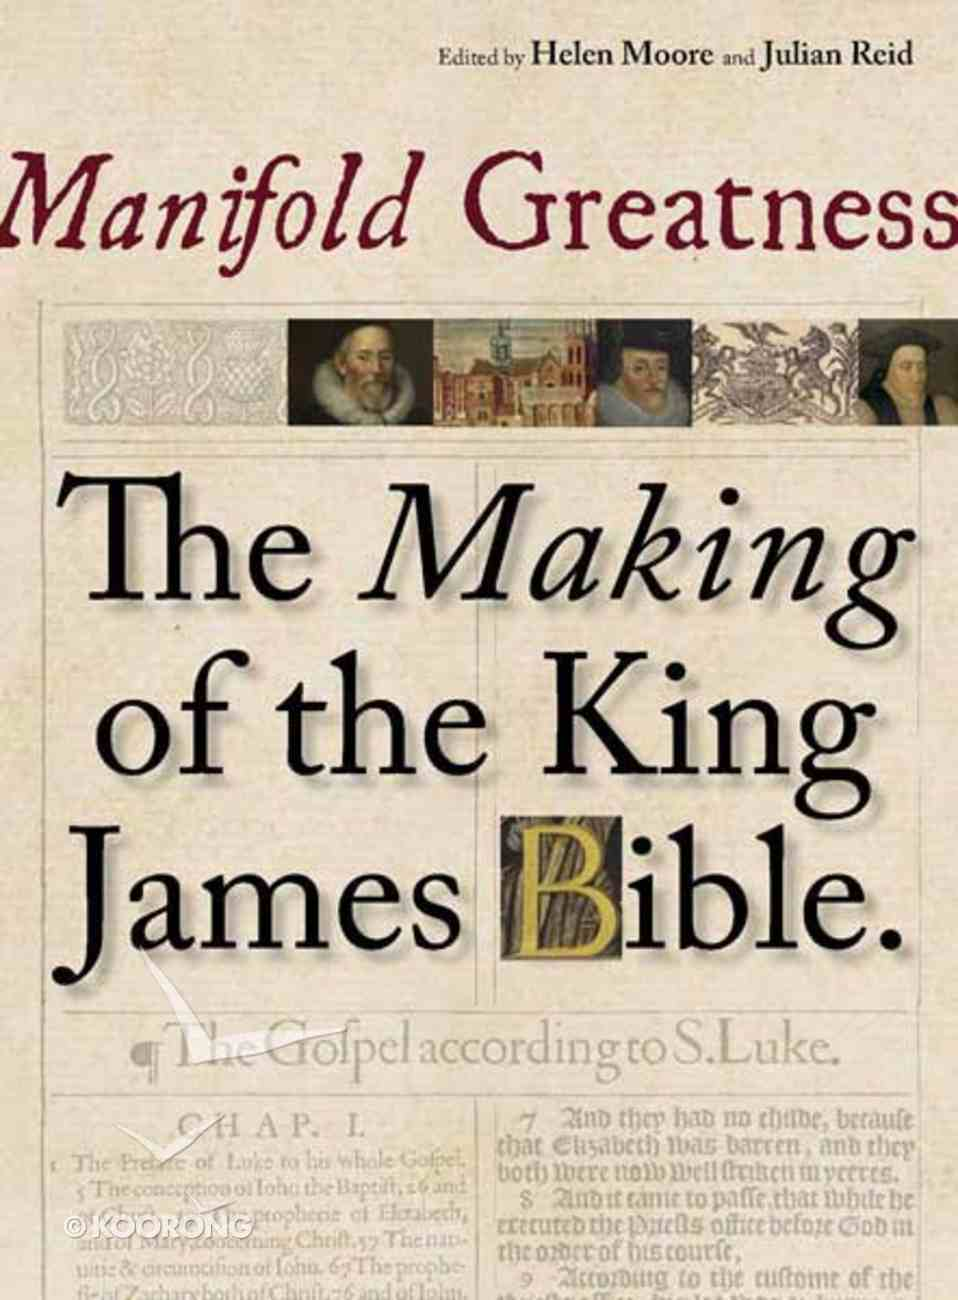 Manifold Greatness: The Making of the King James Bible Paperback